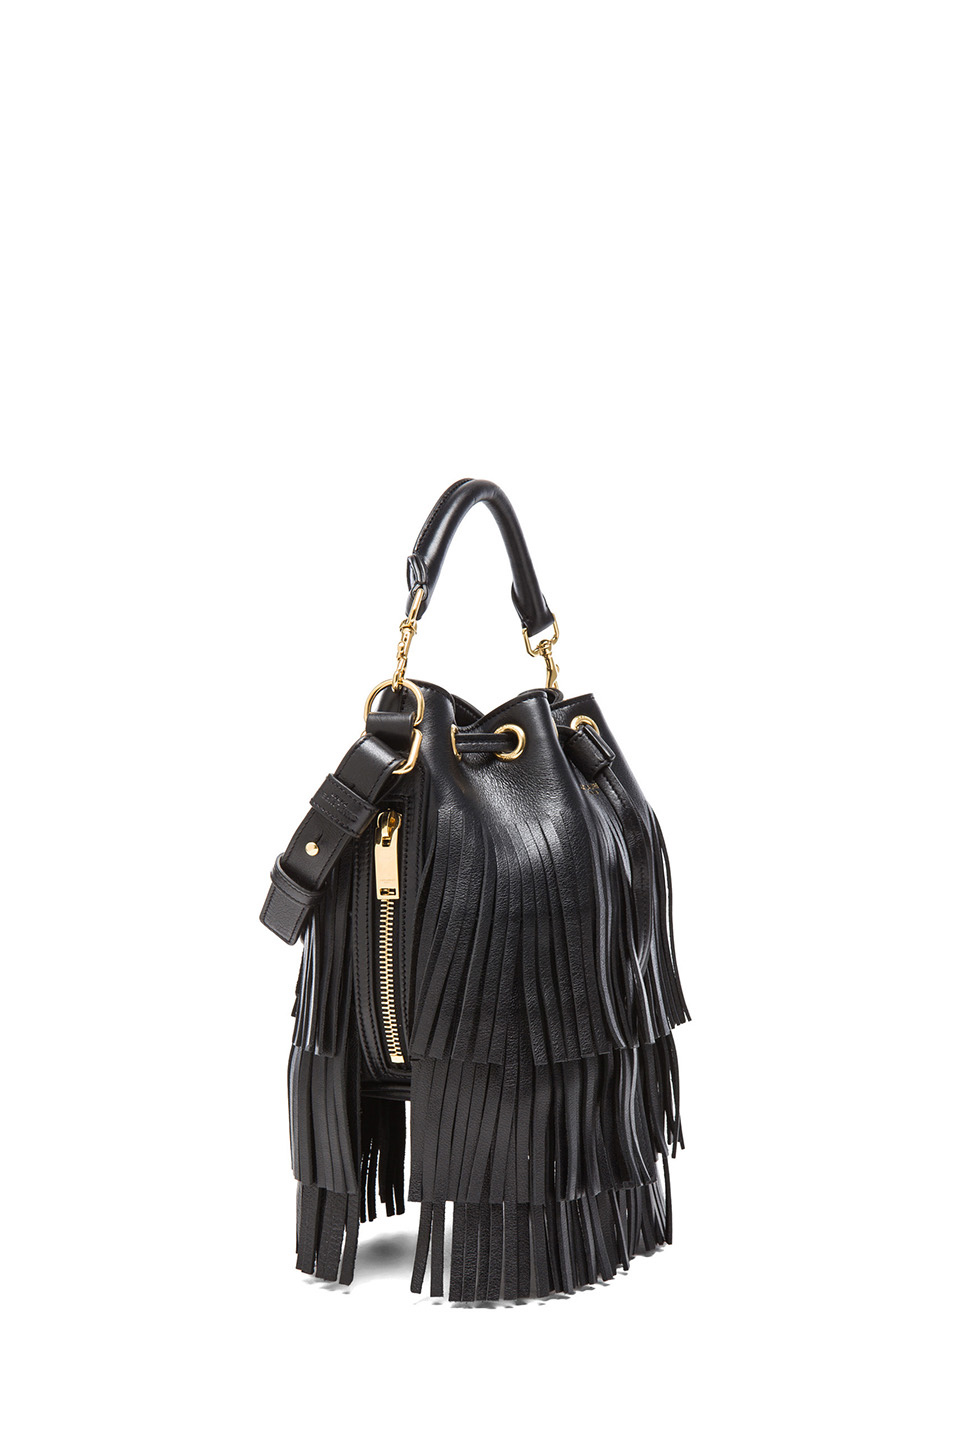 Saint Laurent | Small Fringe Bucket Bag in Black